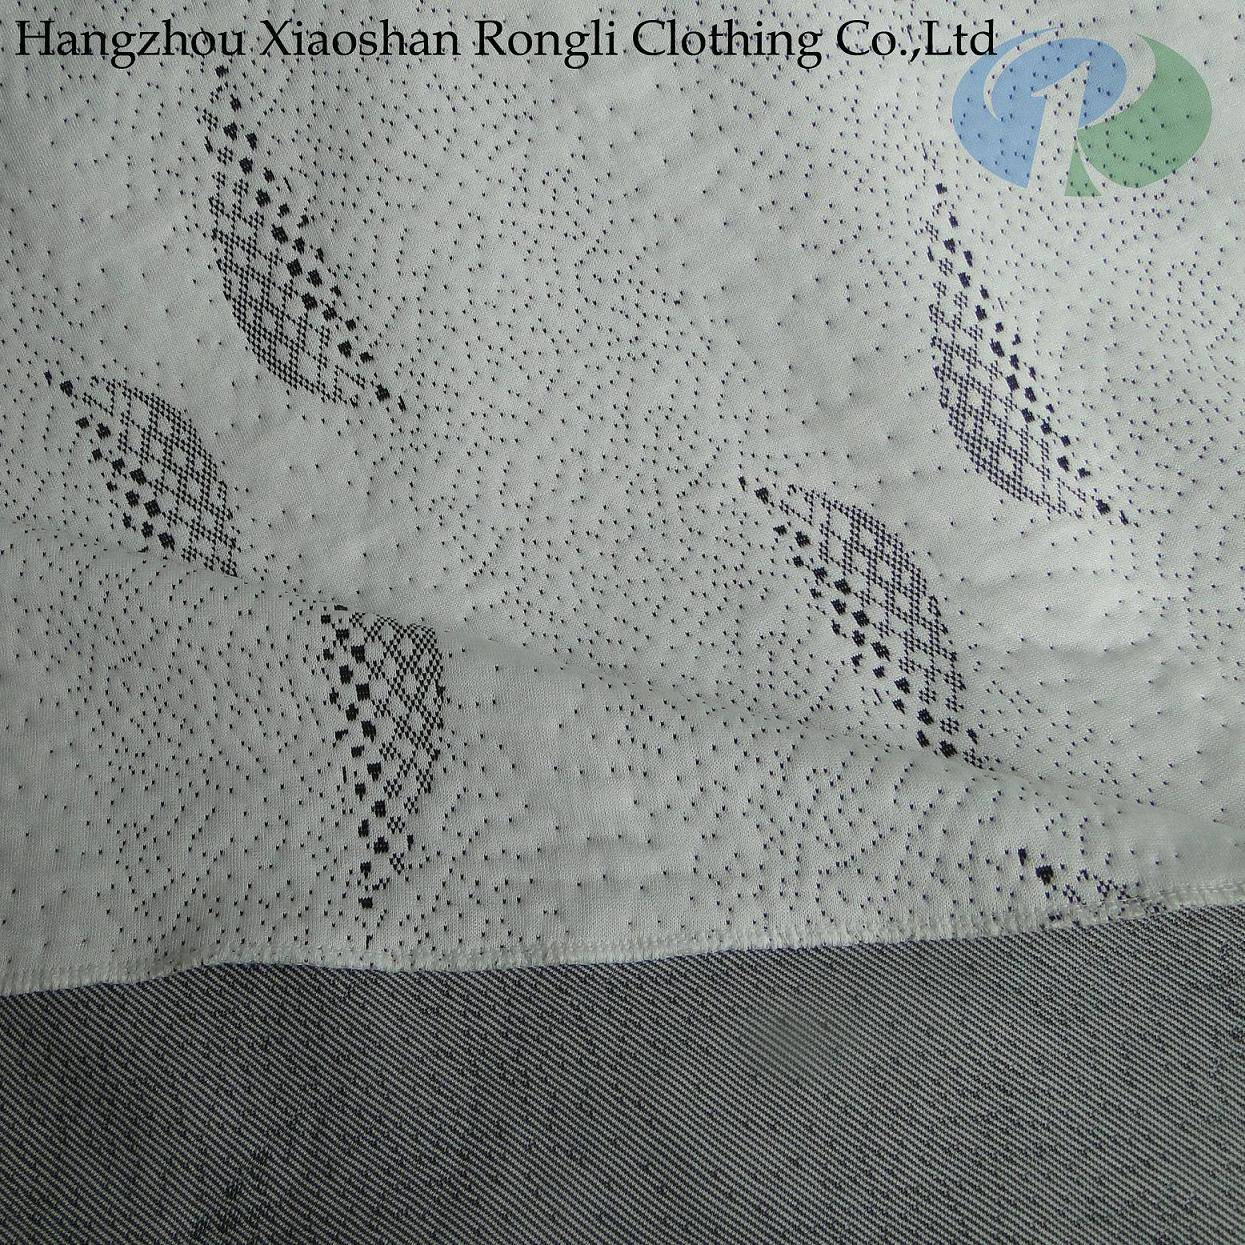 Sell 100% polyester jacquard knitted fabric RLX-M5A